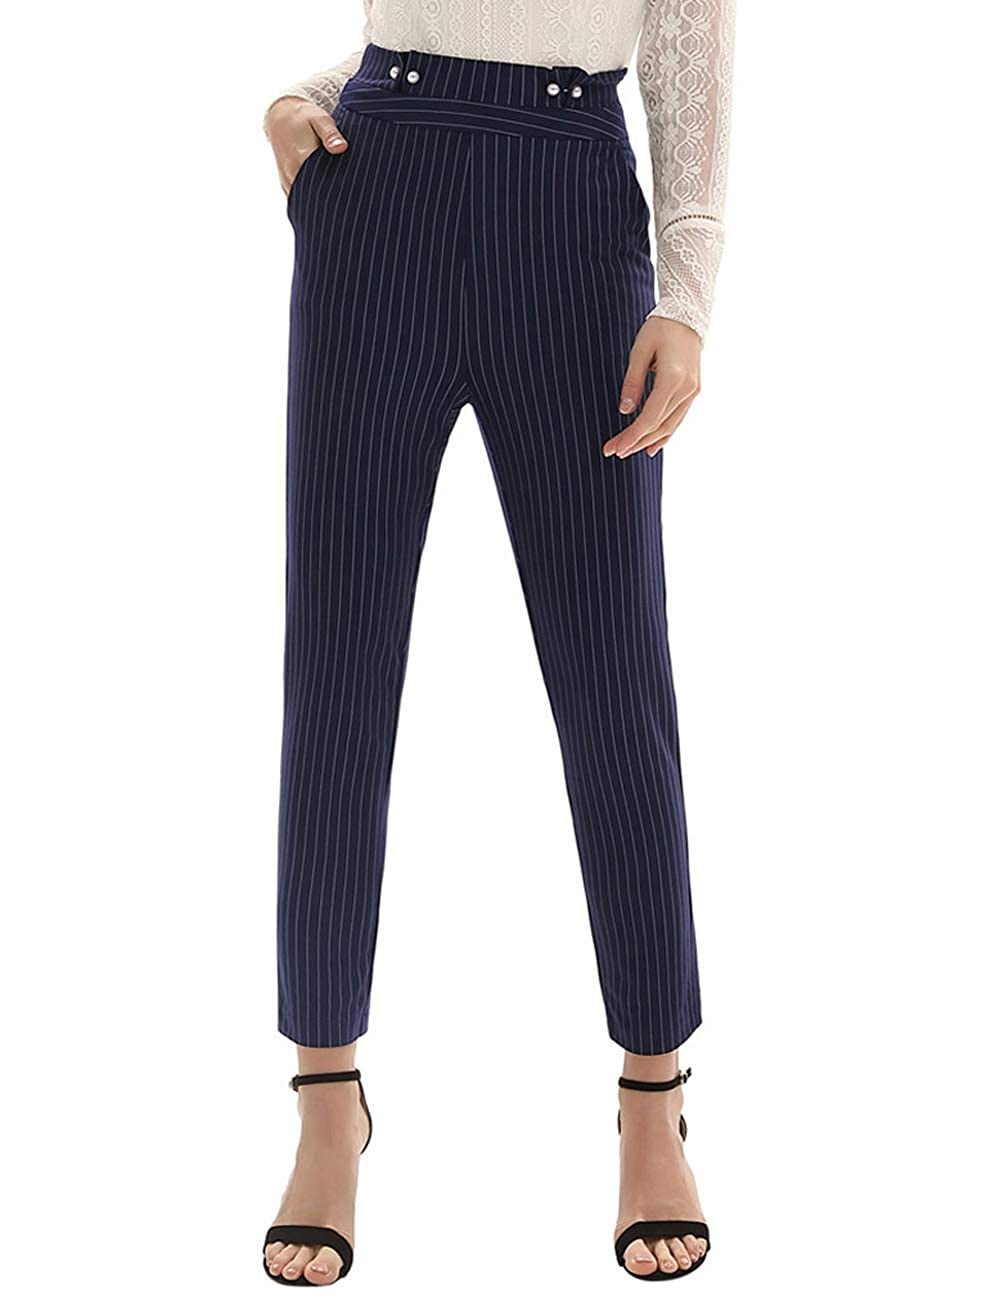 d13d1aefd32 GRACE KARIN Women's Pinstripe Elastic High Waist Slim Fit Loose Faux Pearl  Decorated Ankle Pants with Pocket